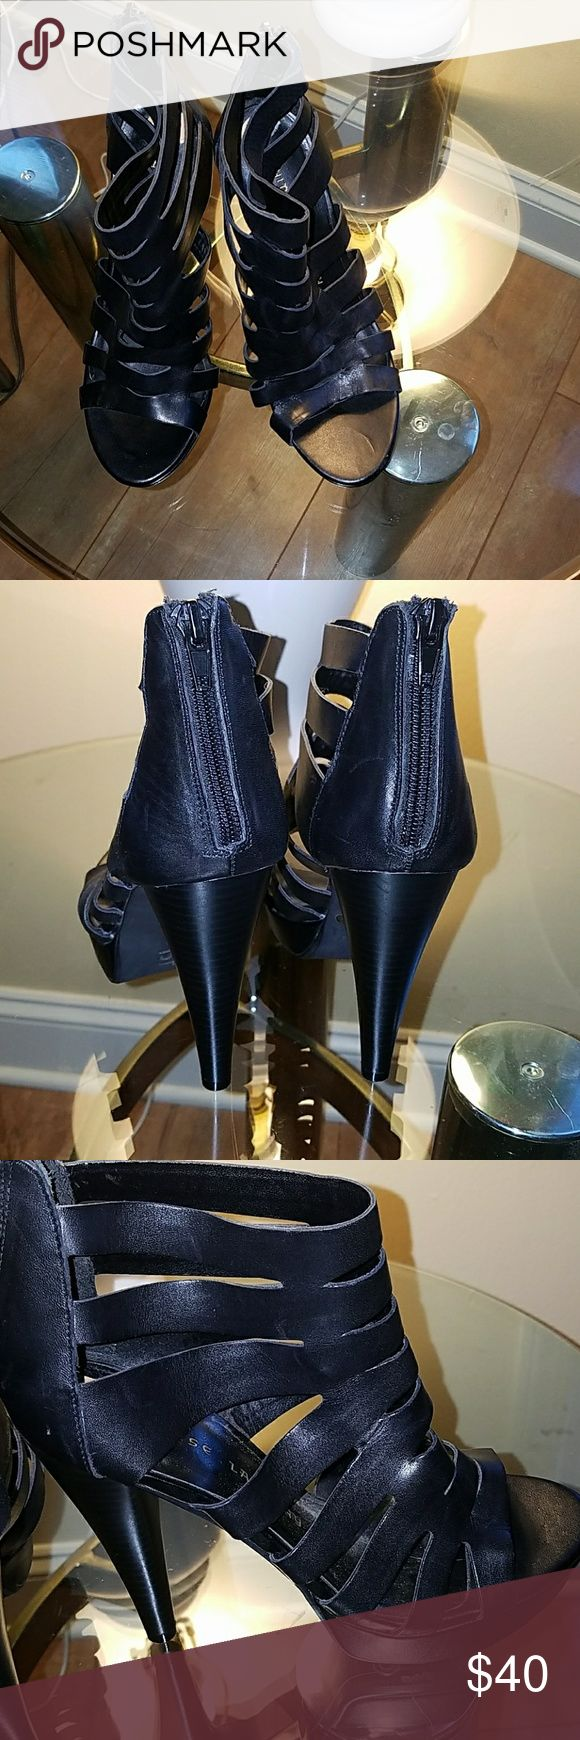 Chinese Laundry  heels( ONE DAY SALE) Super cute black 4.5 heels the left heel has two small scratches in the front these shoes are in excellent used condition the heels are intact no scratches no wear to the heel these shoes are soft leather with the zipper closure in the back open toe in the front. Simply Beautiful👠🛍 Chinese Laundry Shoes Heels